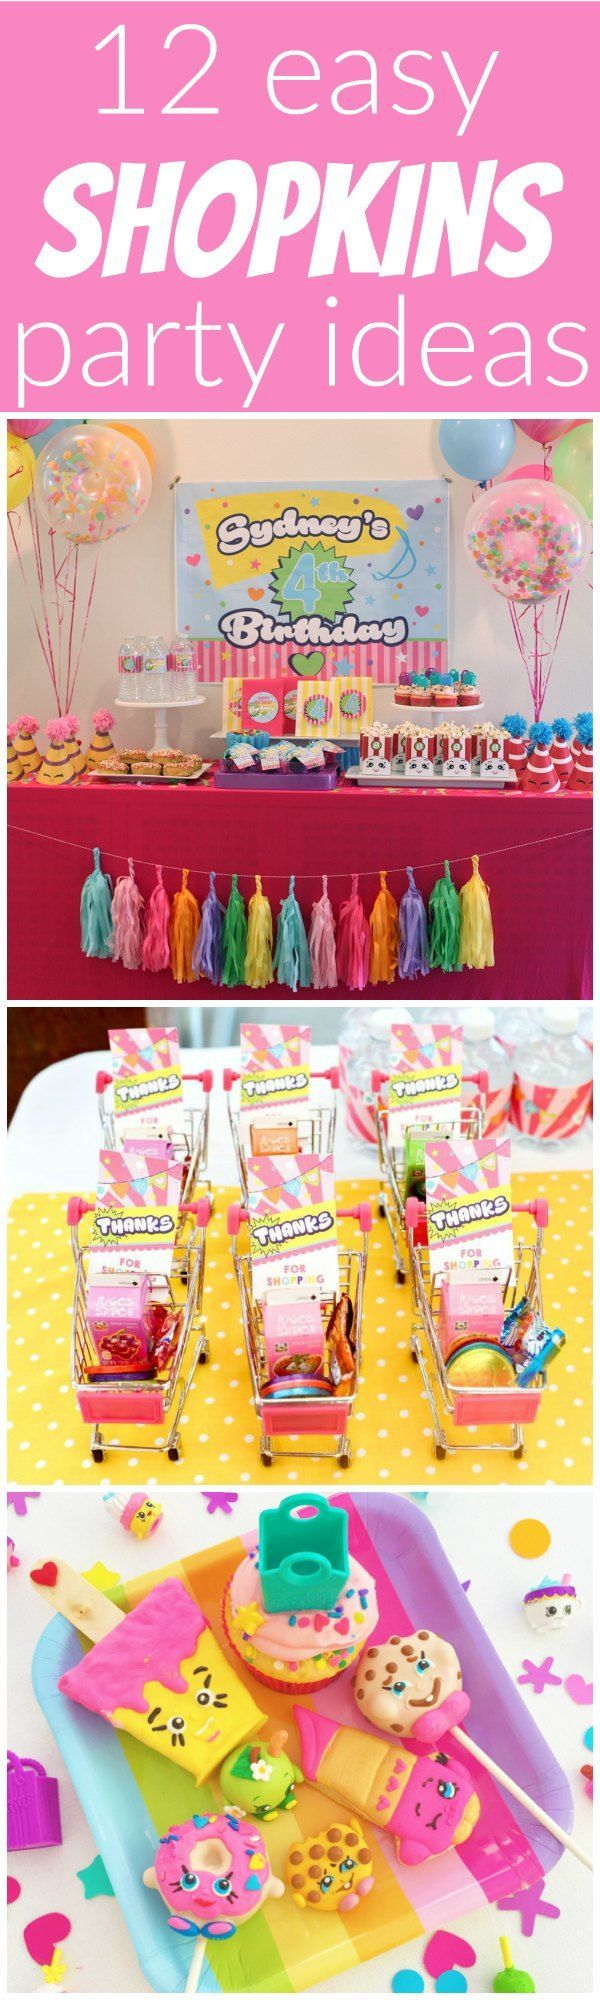 12 Easy Shopkins Party Ideas